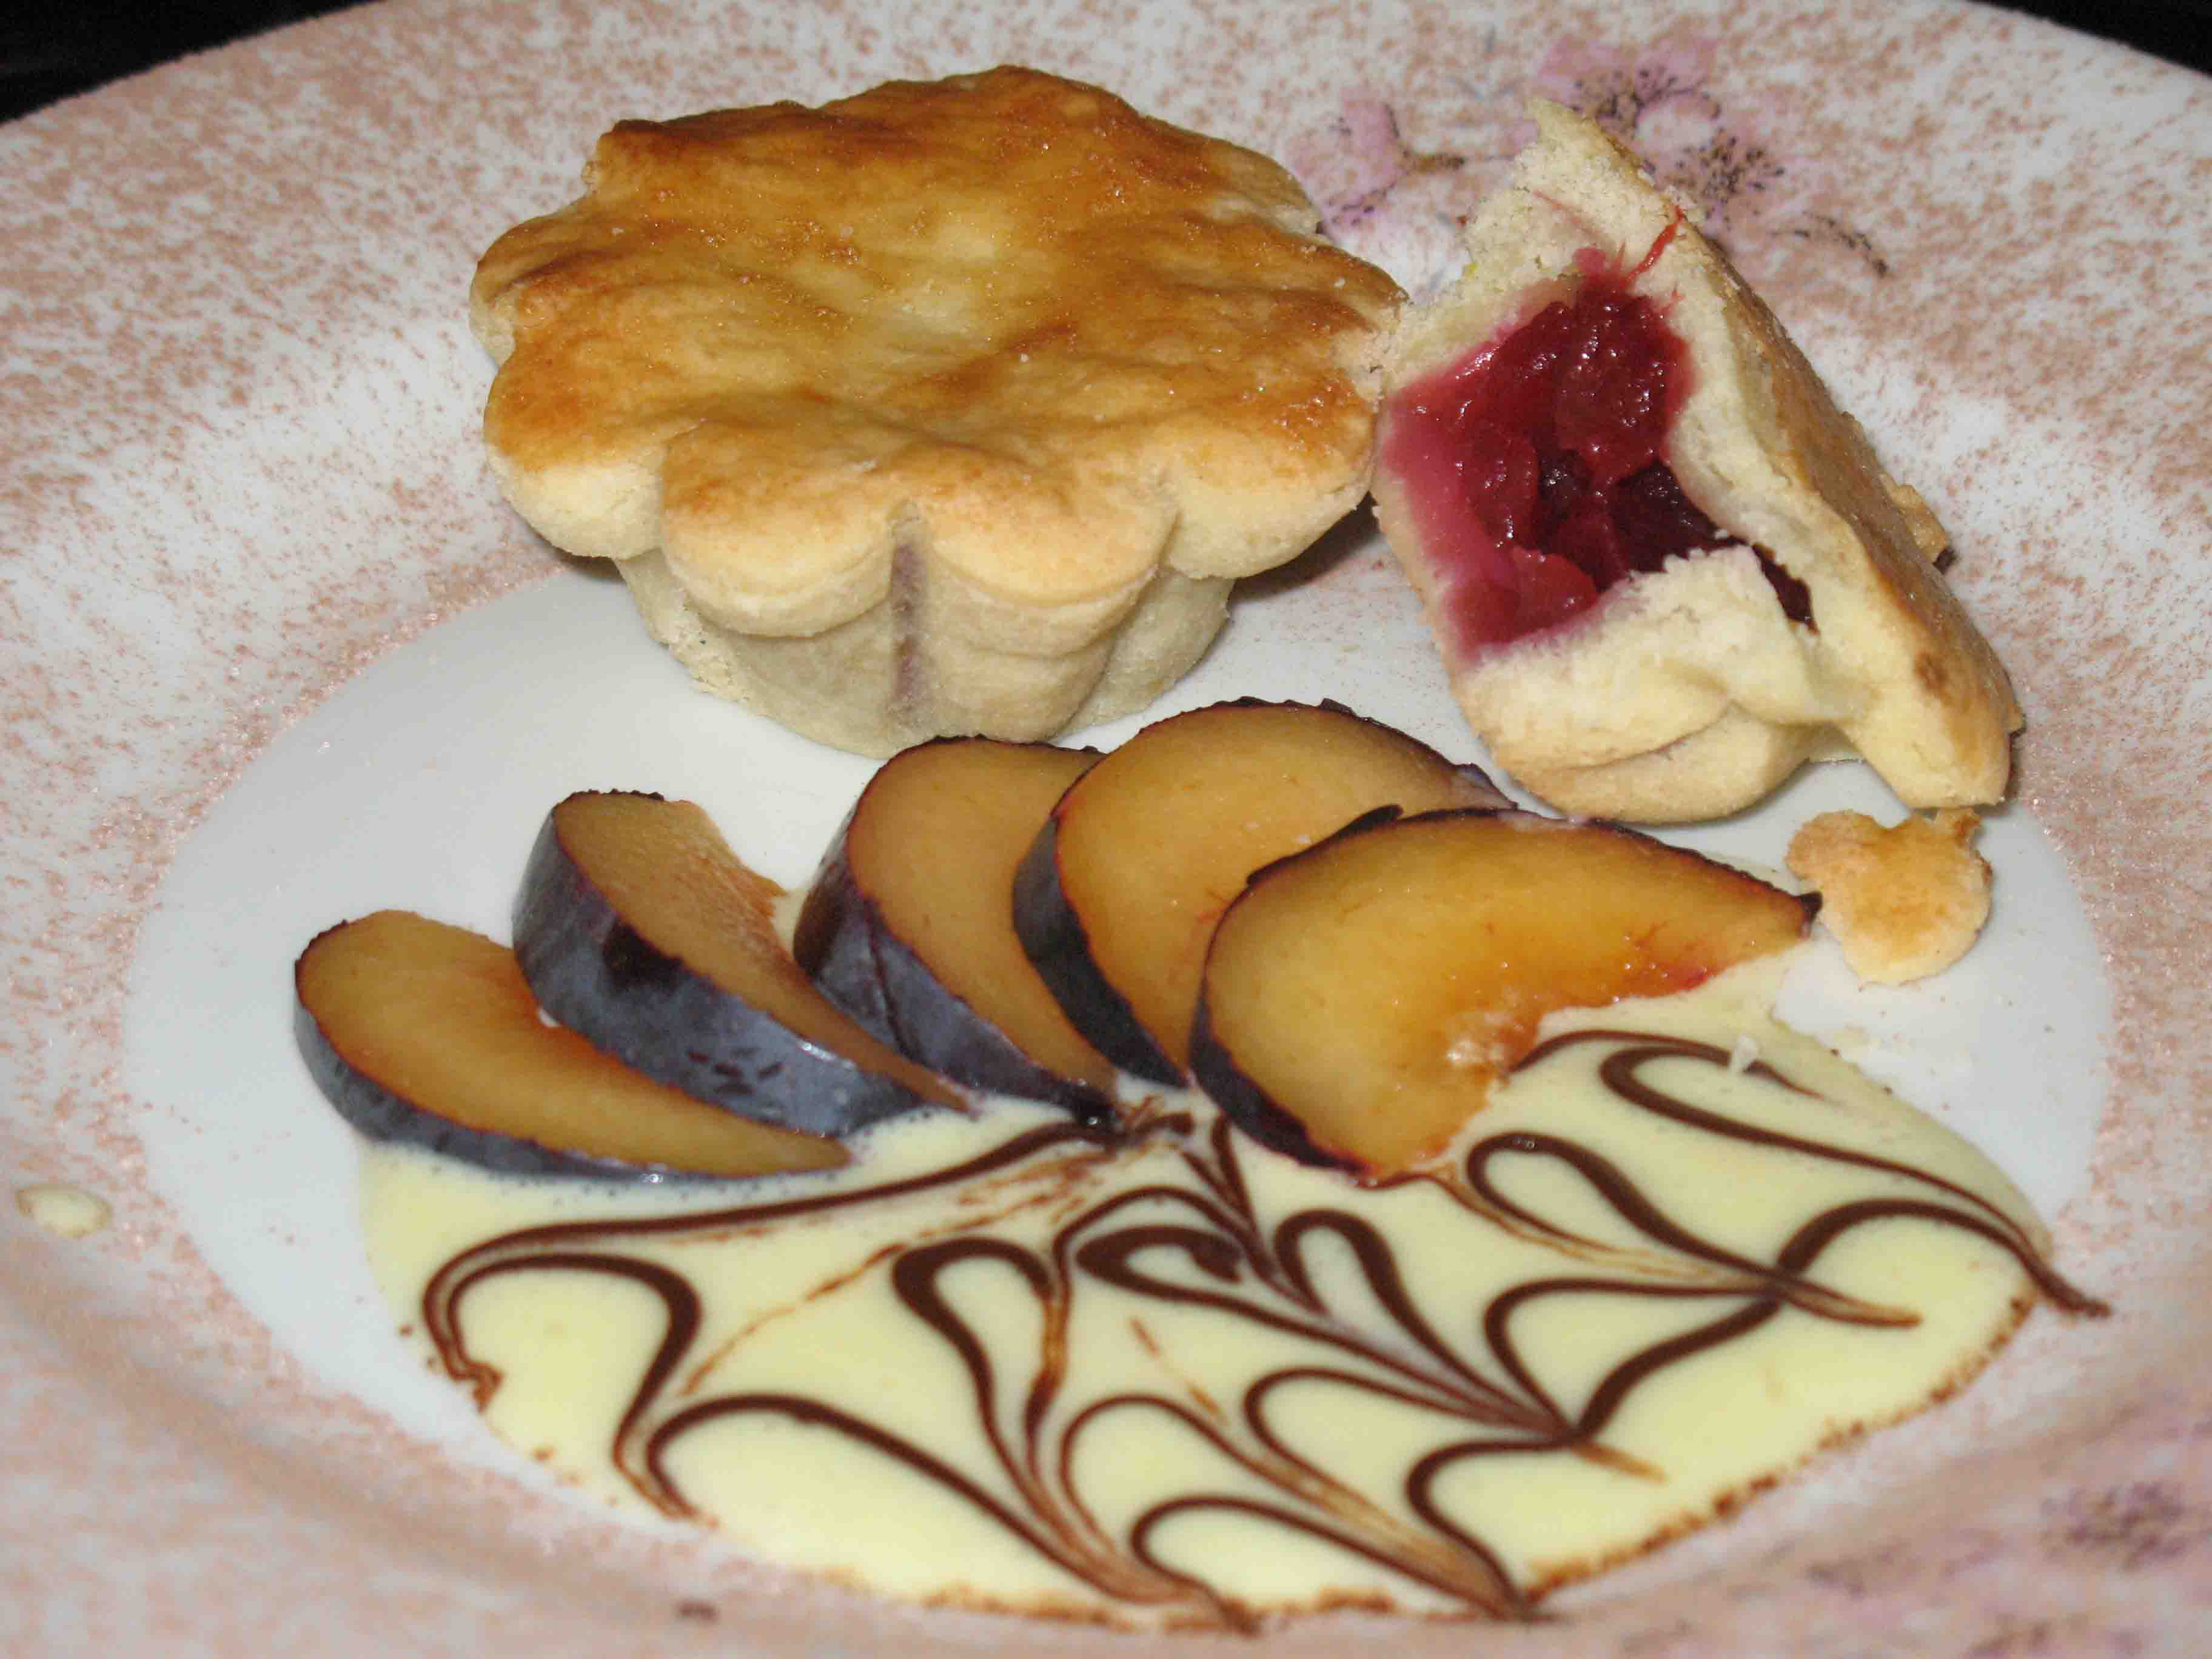 Patty-cake with apples and prunes